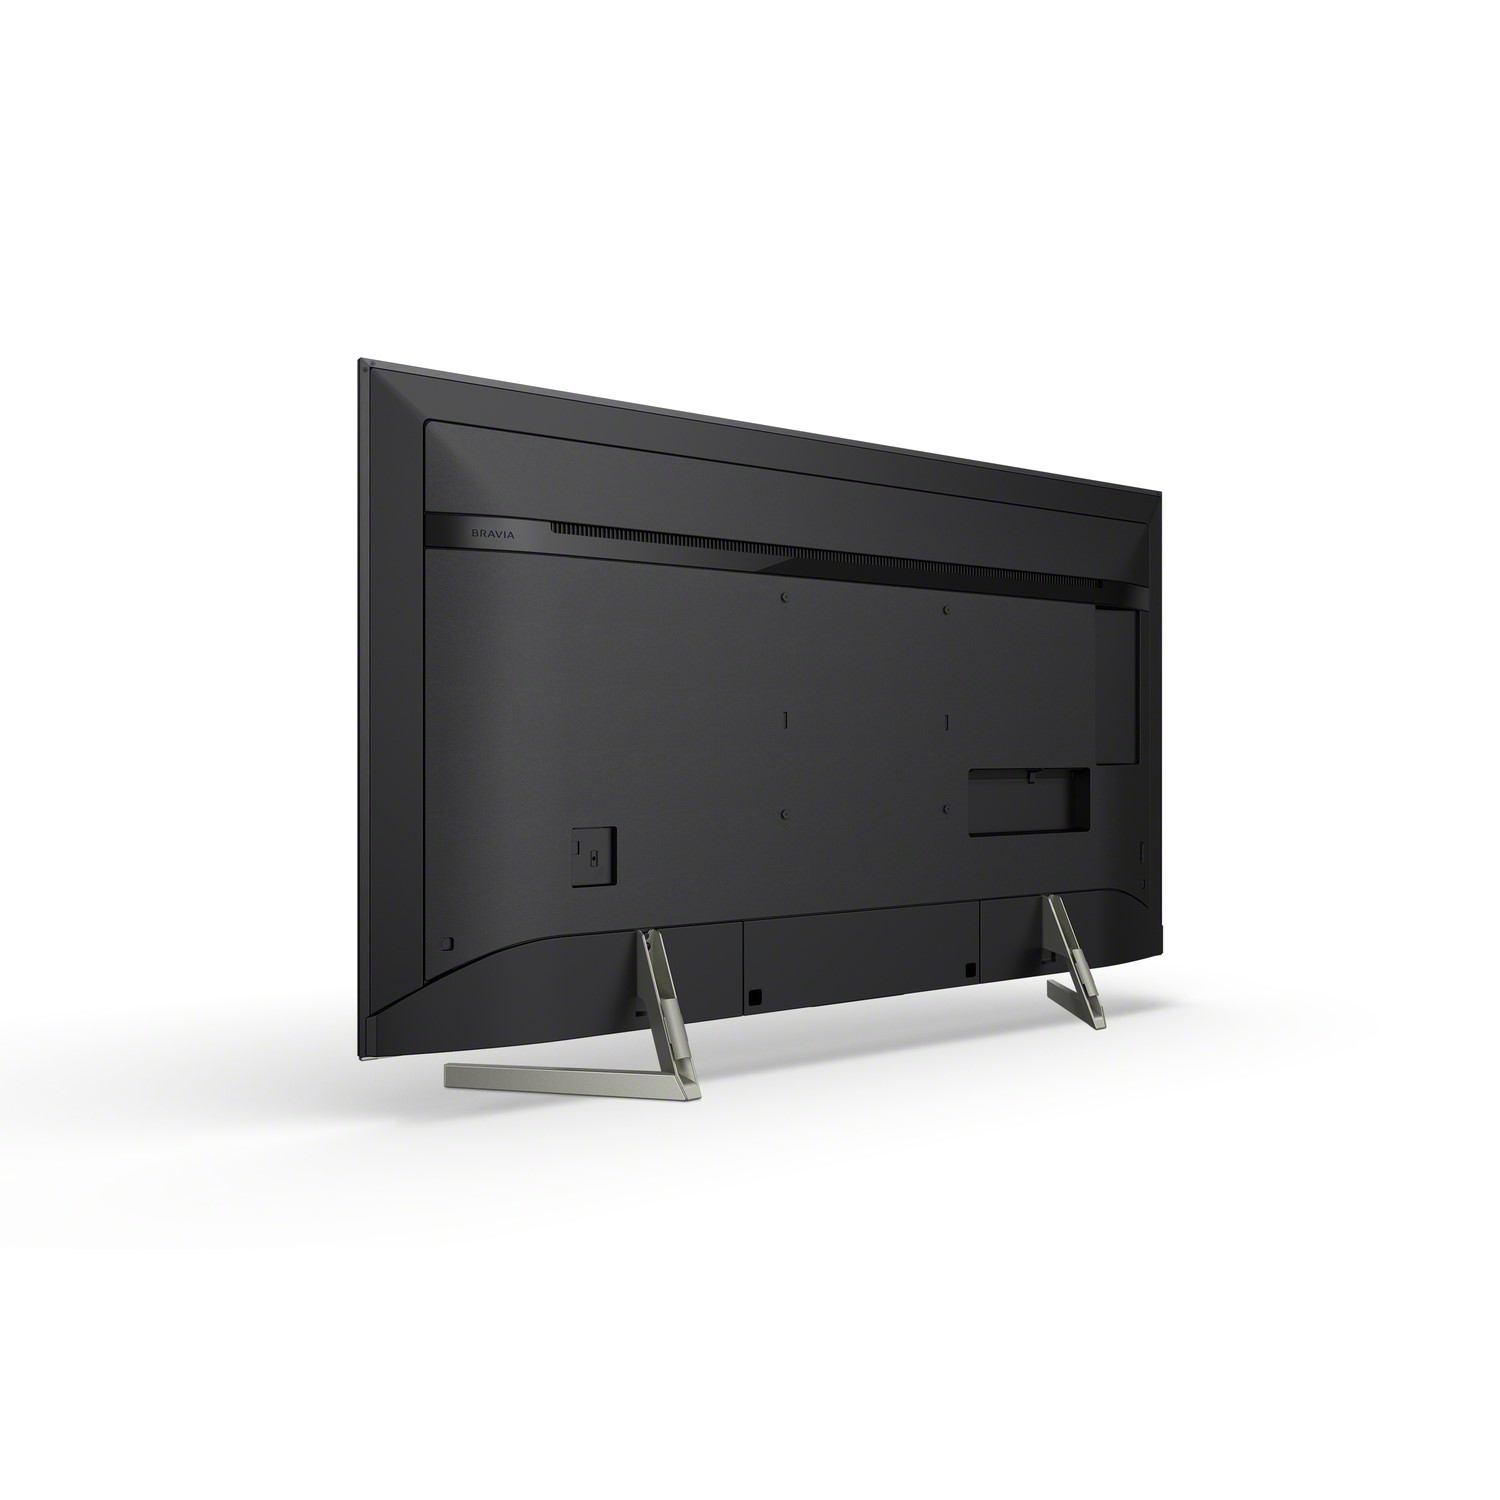 Sony Bravia Kd65xf9005 65 4k Ultra Hd Hdr Led Android Smart Tv